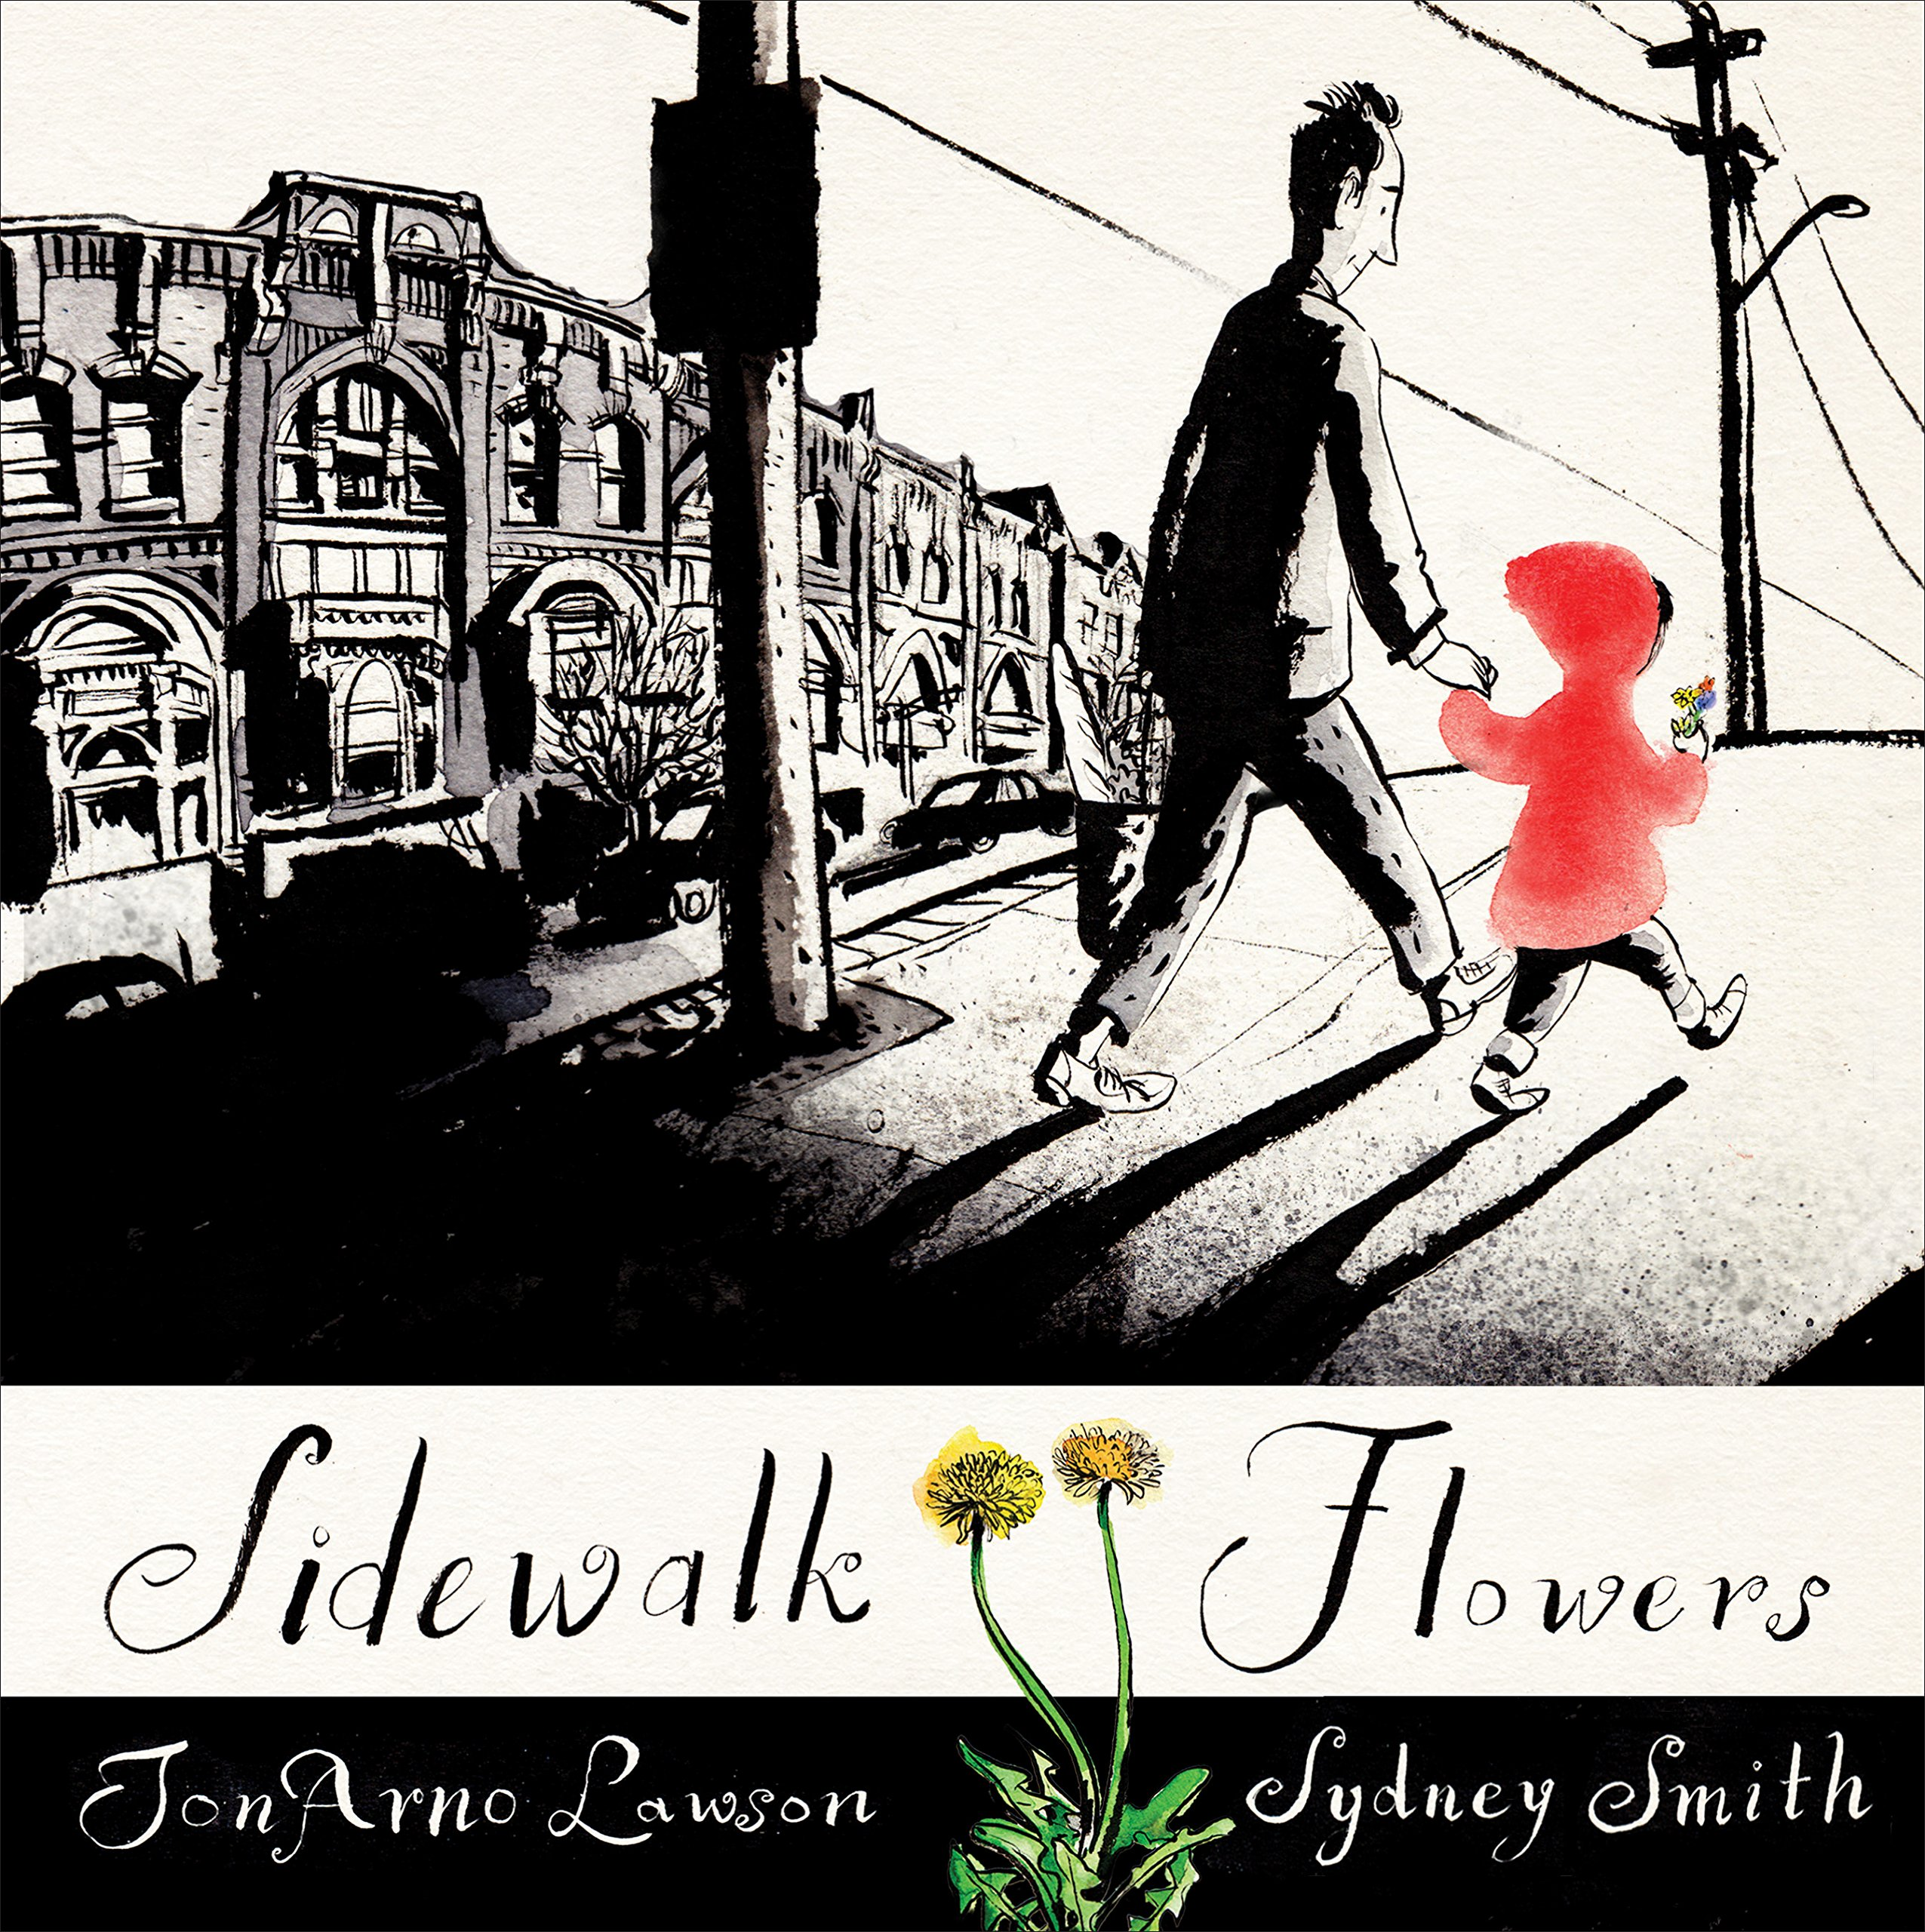 Sidewalk Flowers by Jon Arno Lawson, illustrations by Sidney Smith